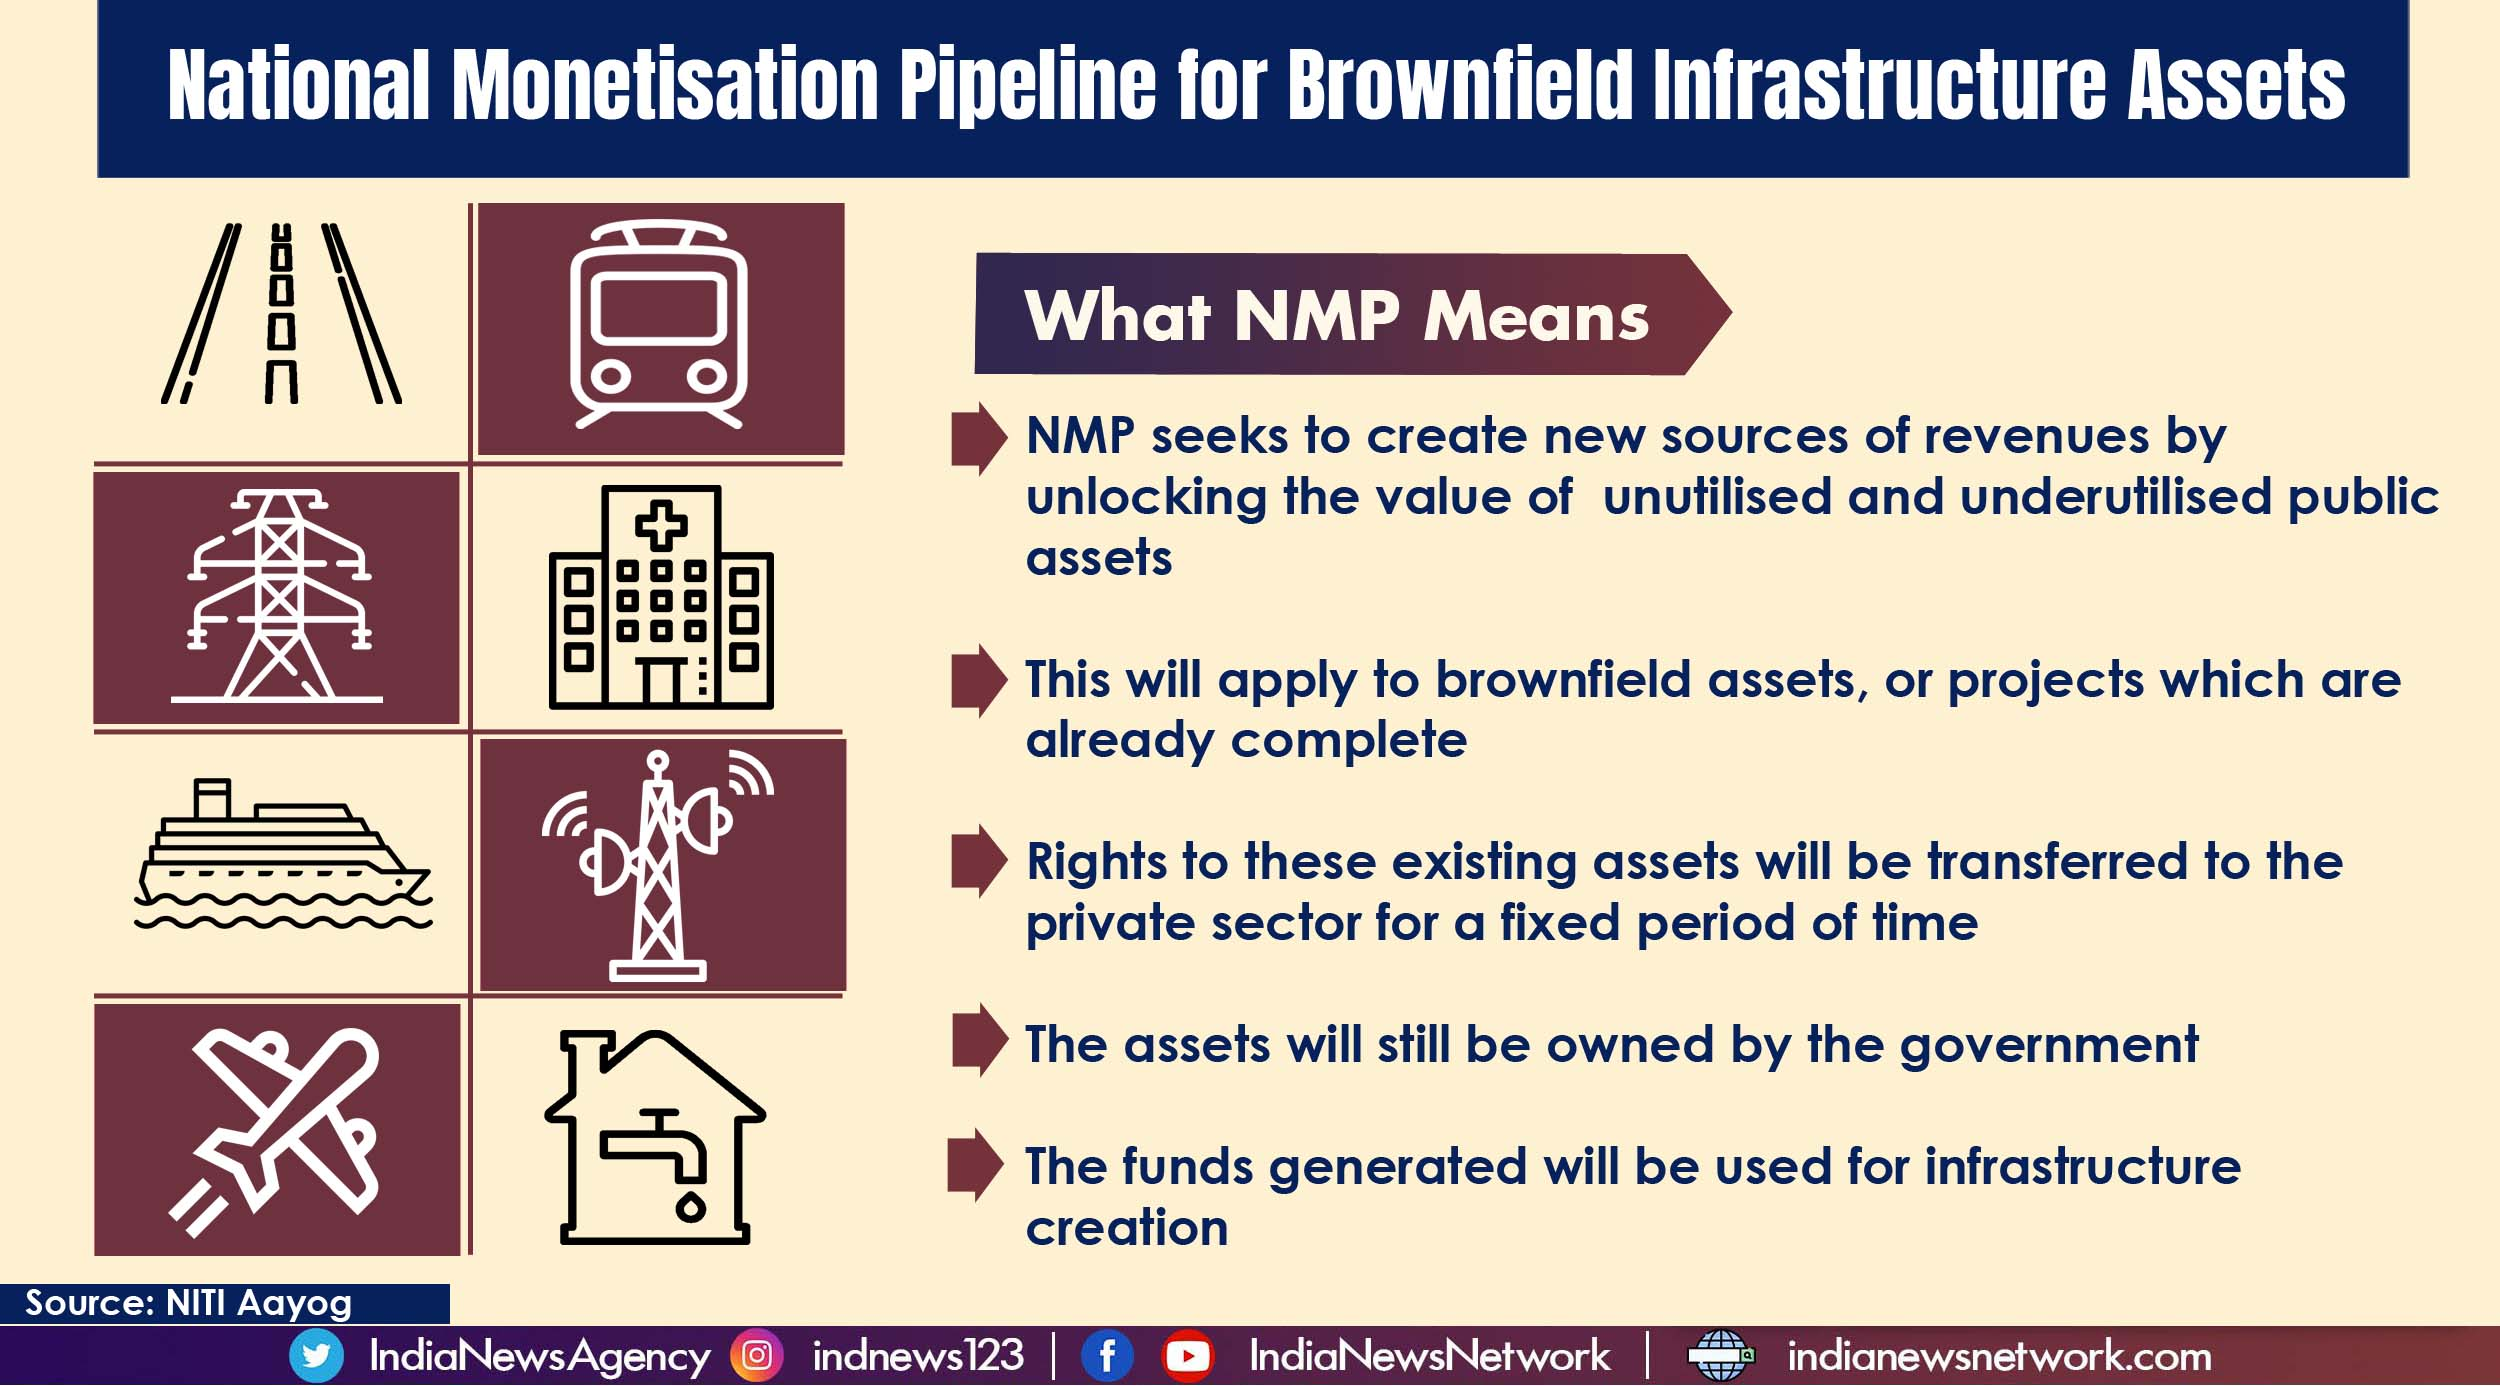 National Monetisation Pipeline: Govt to generate Rs 6,00,000 crores from brownfield assets in next four years